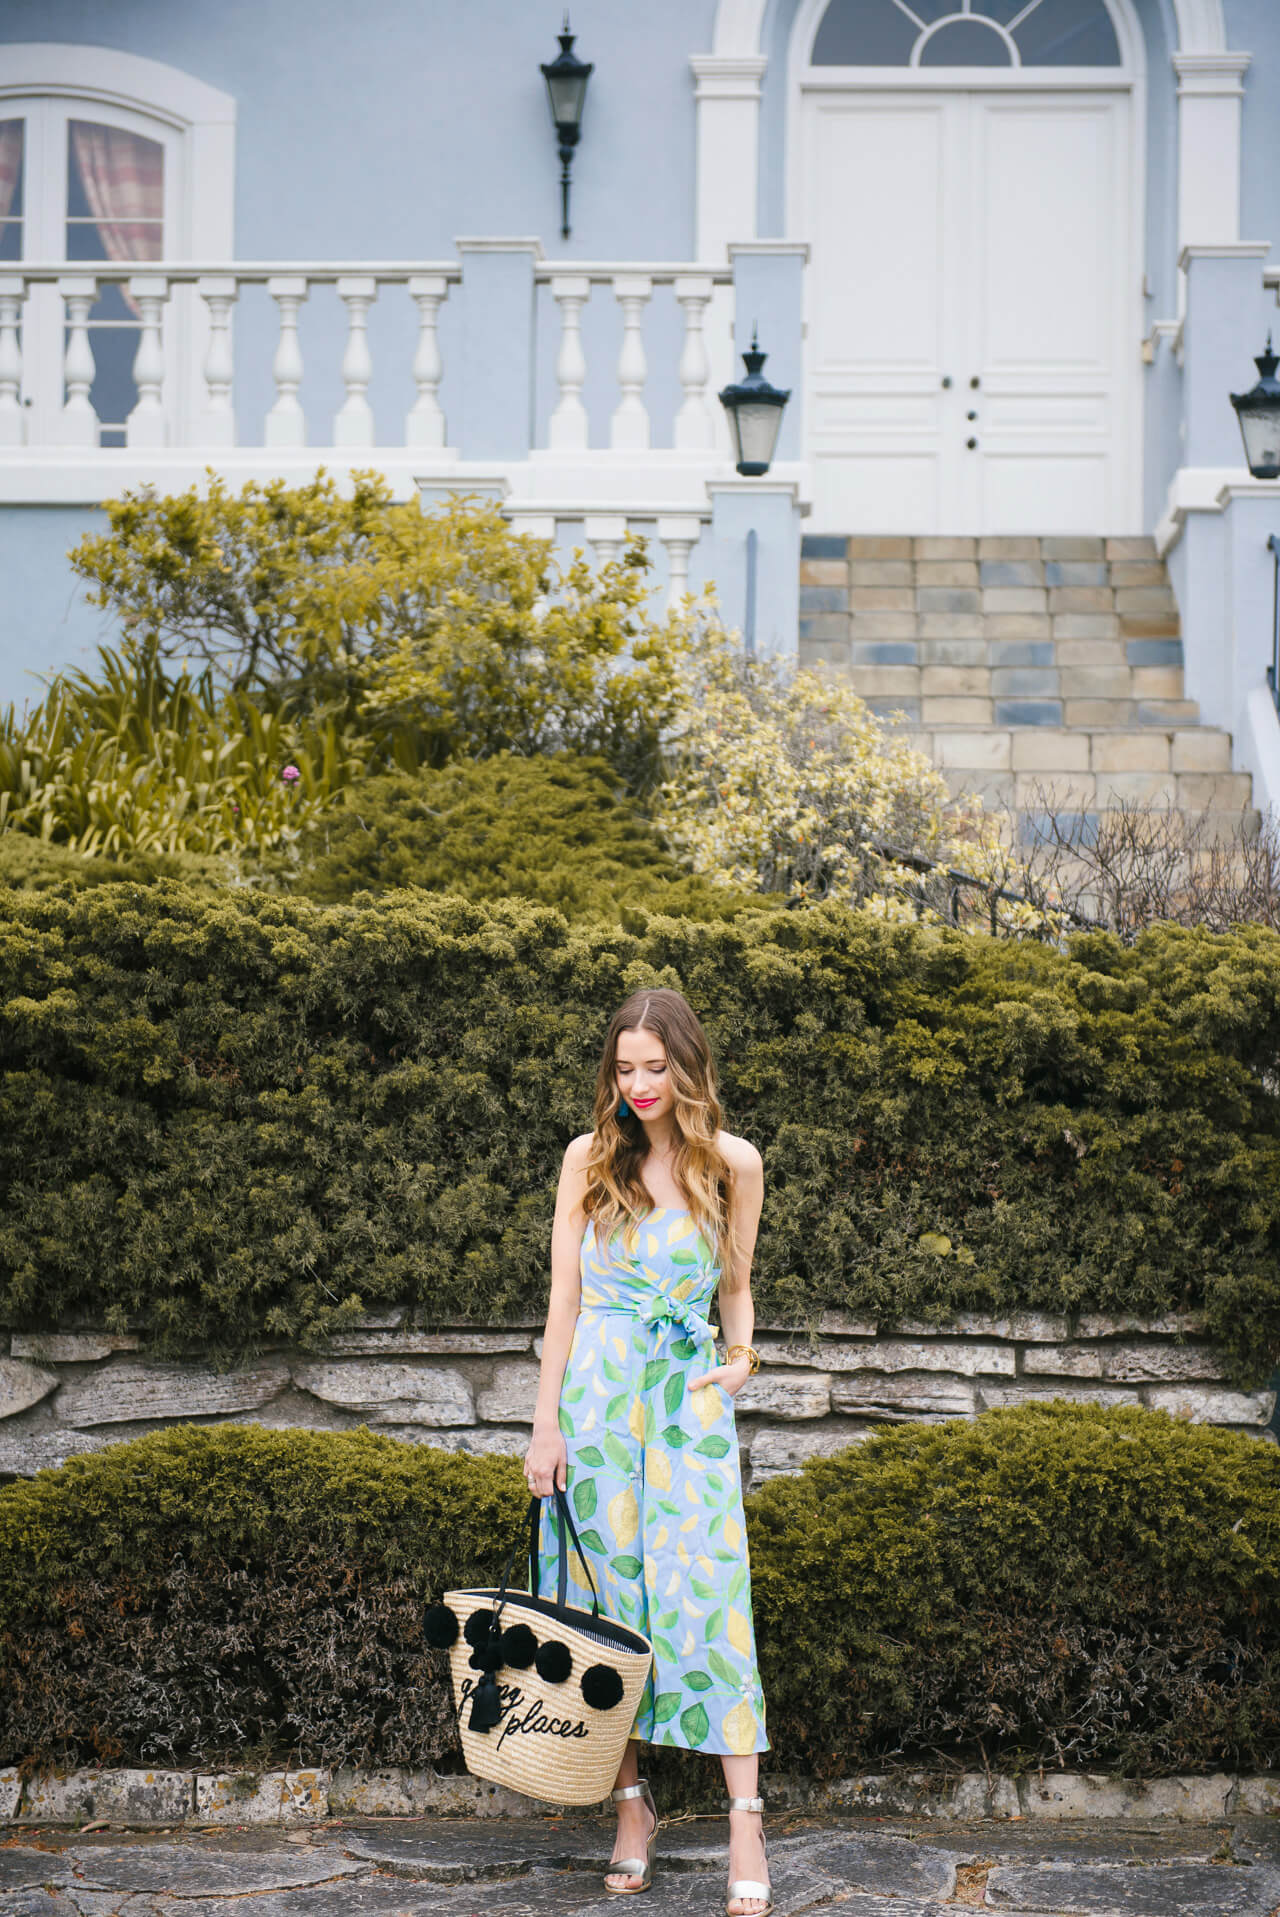 retro-inspired outfit inspiration for spring - lemon print jumpsuit